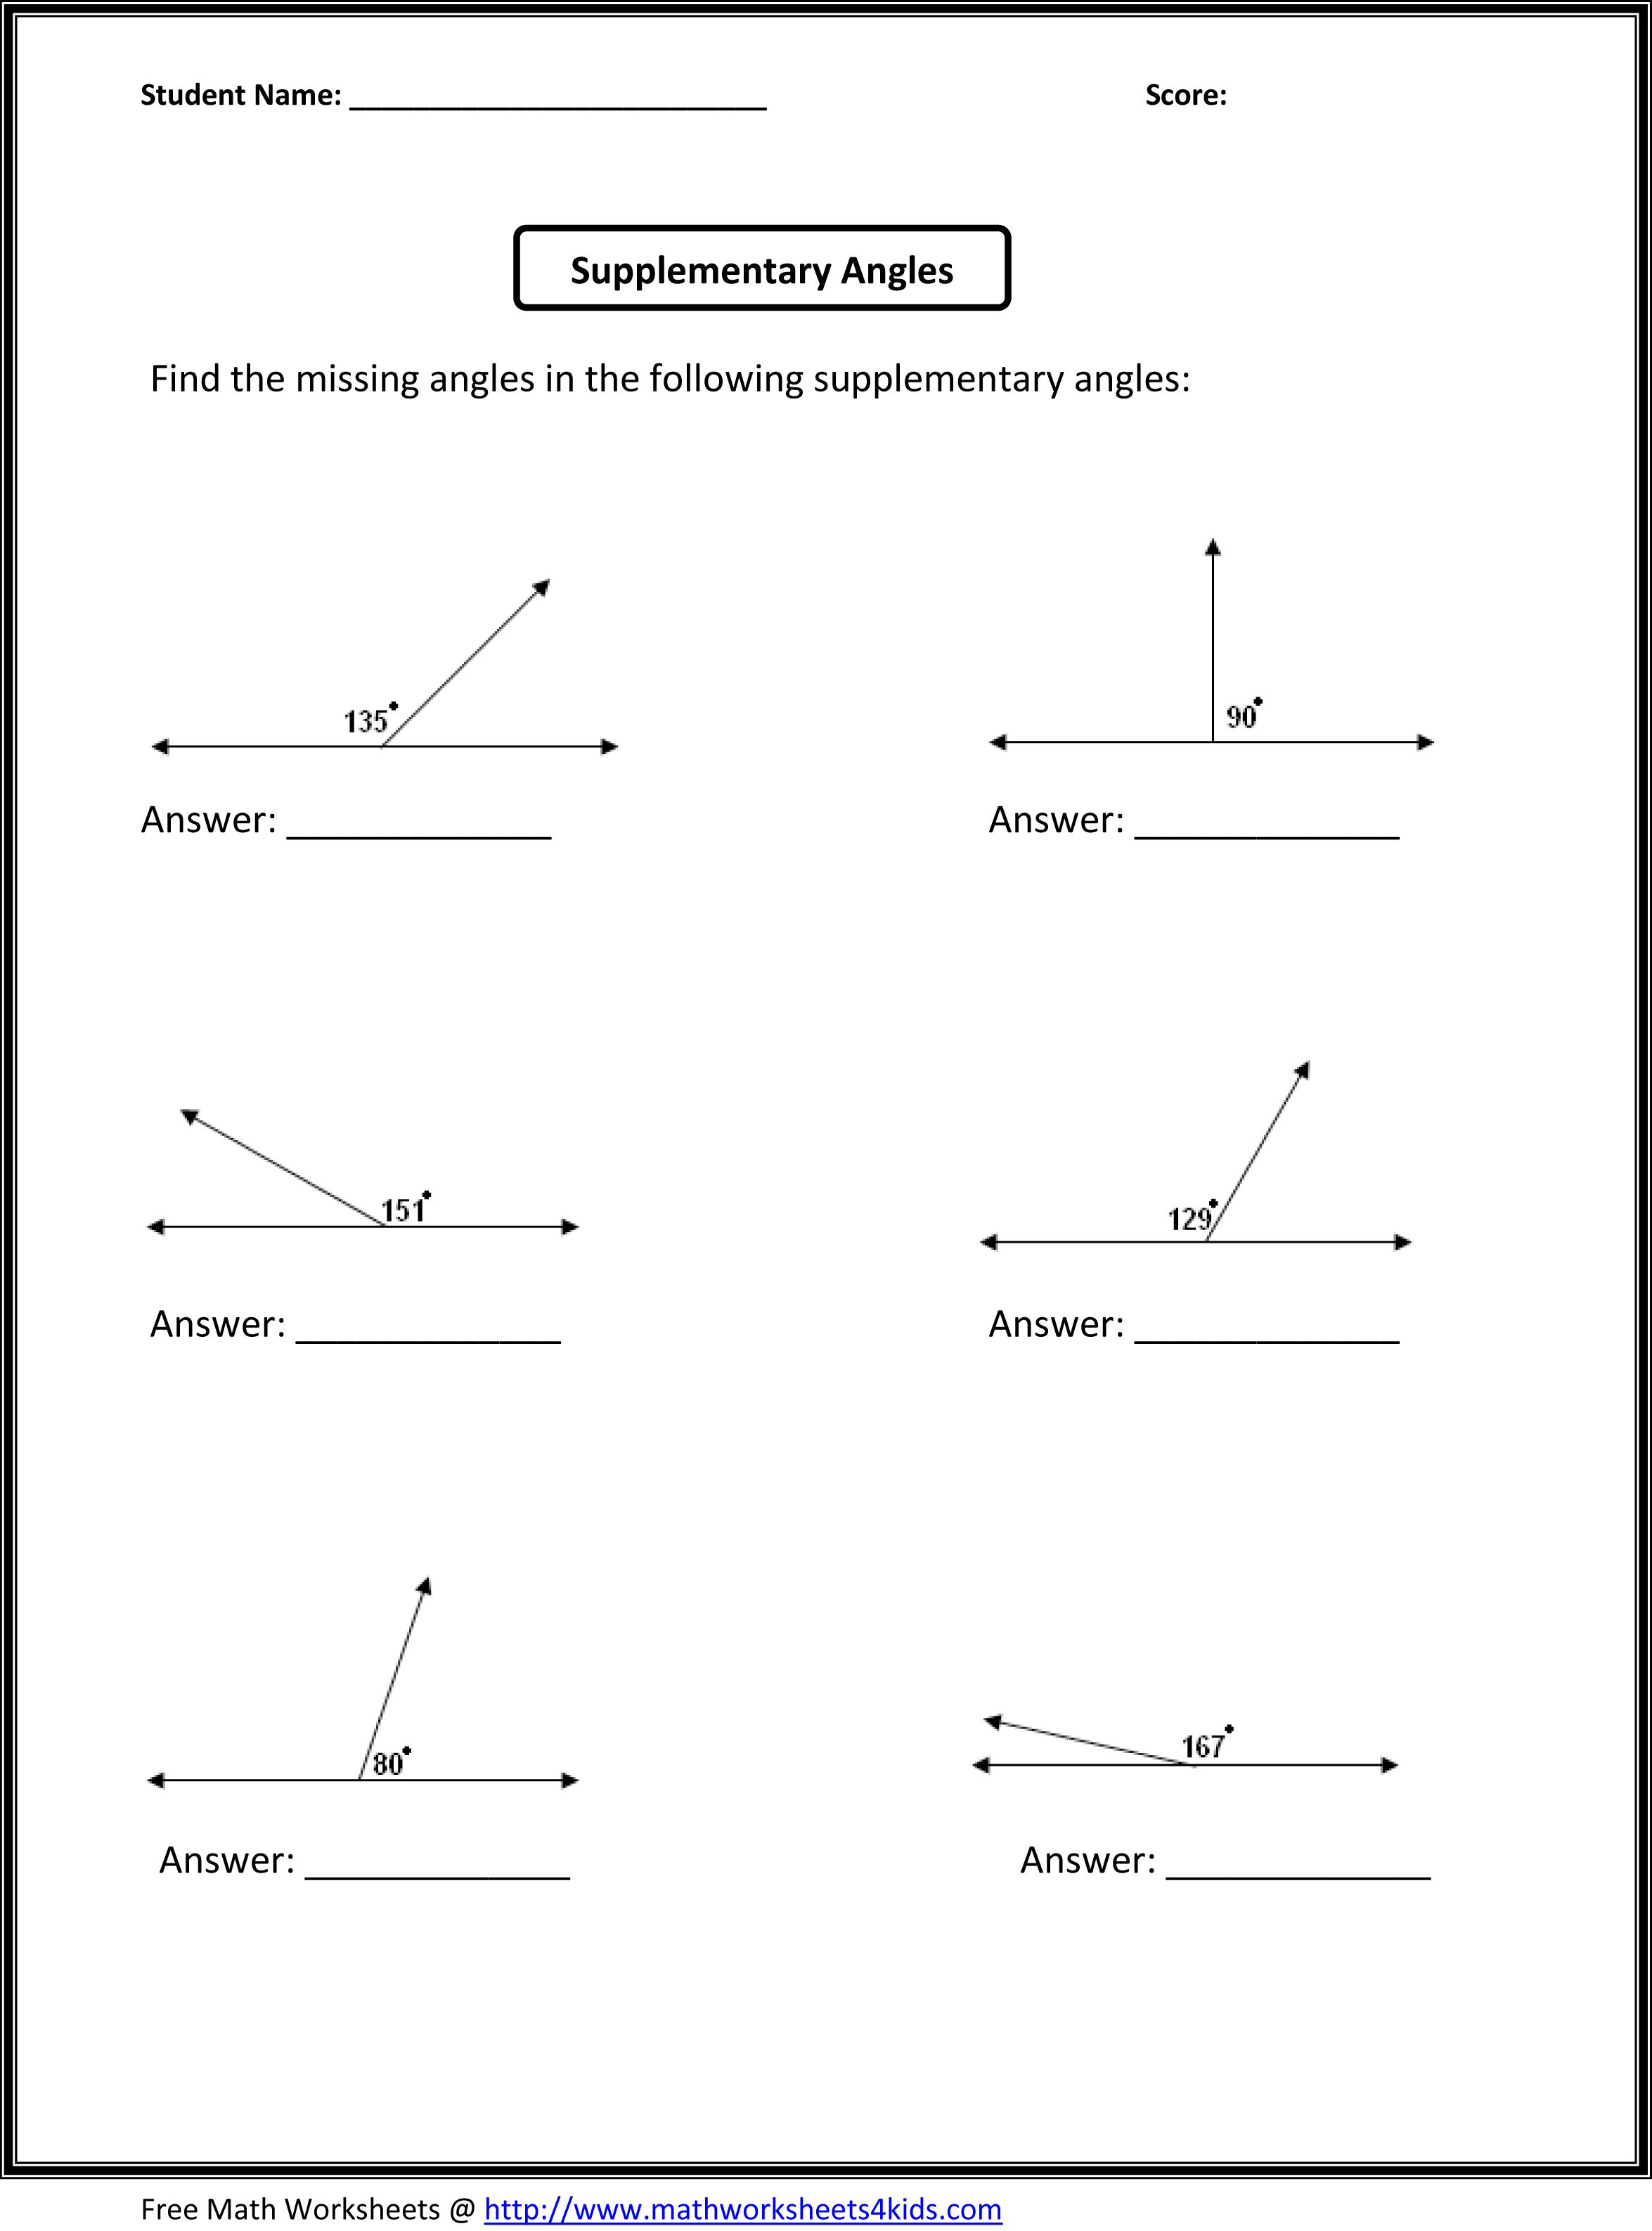 Worksheets Math Worksheets For 6th Graders supplementary angles classroom madness pinterest math sixth grade worksheets